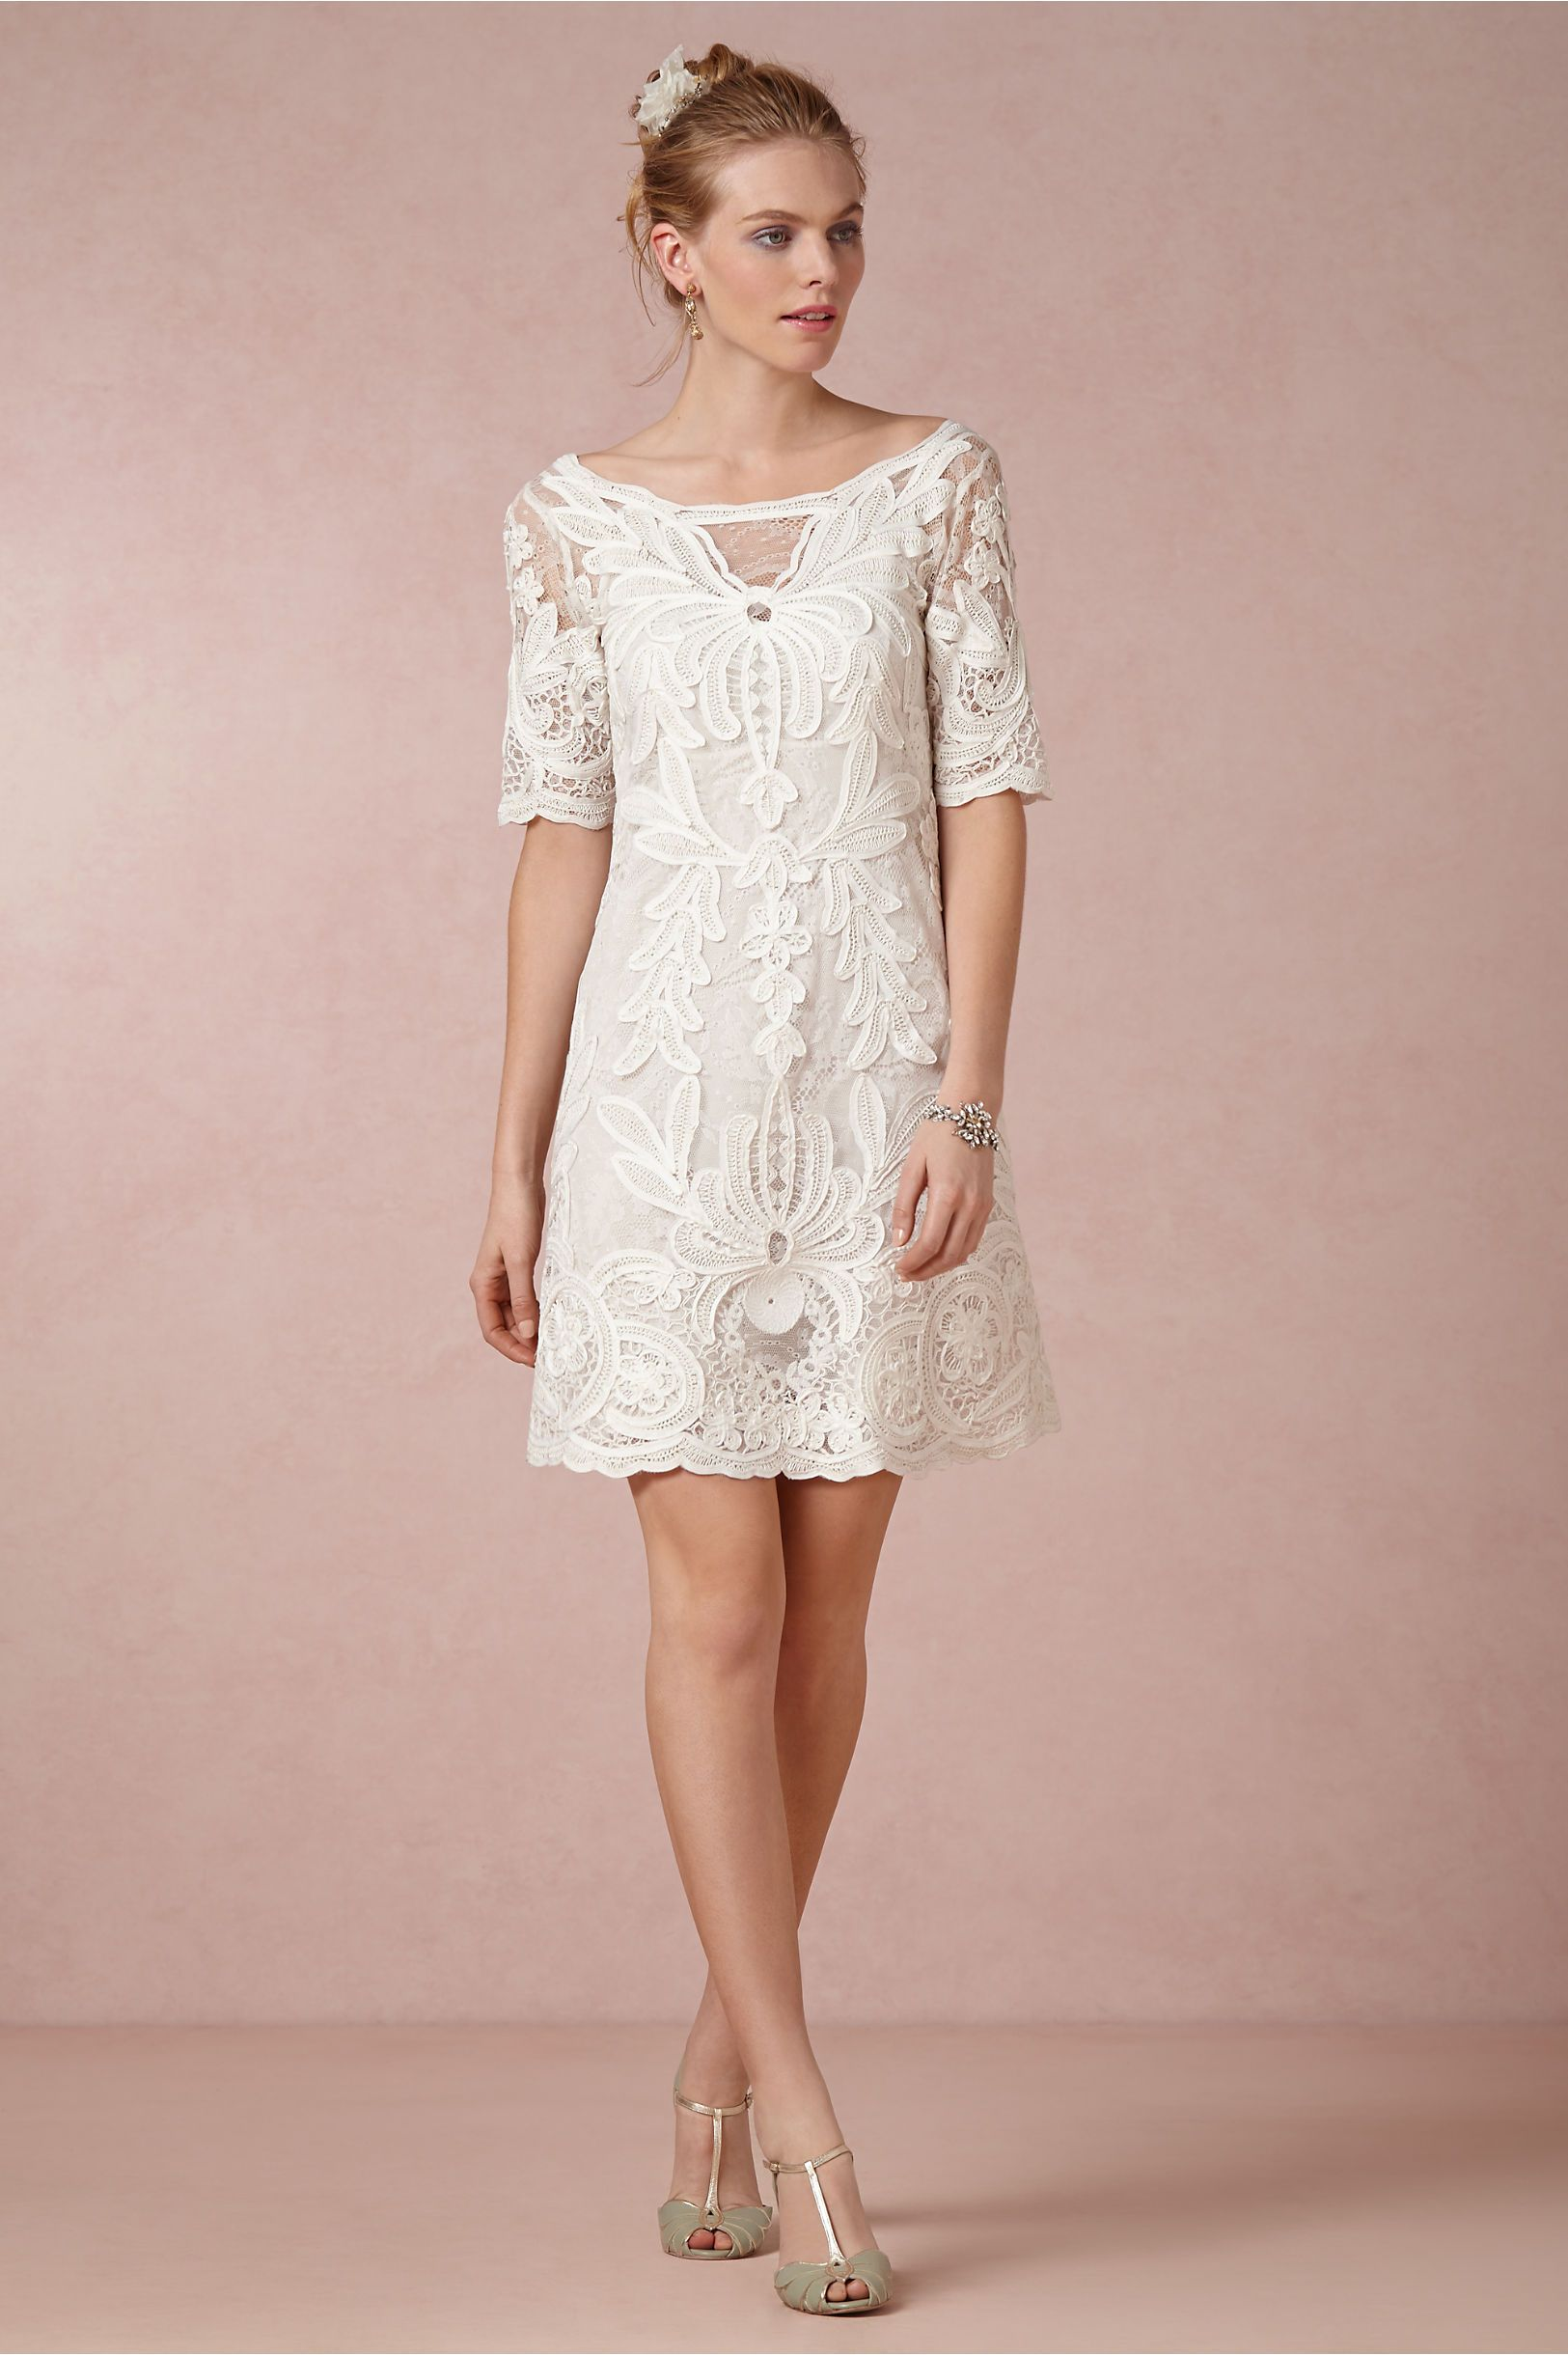 Cream Lace dress with mint shoes!!!!!! Vienna Dress in Bride ...